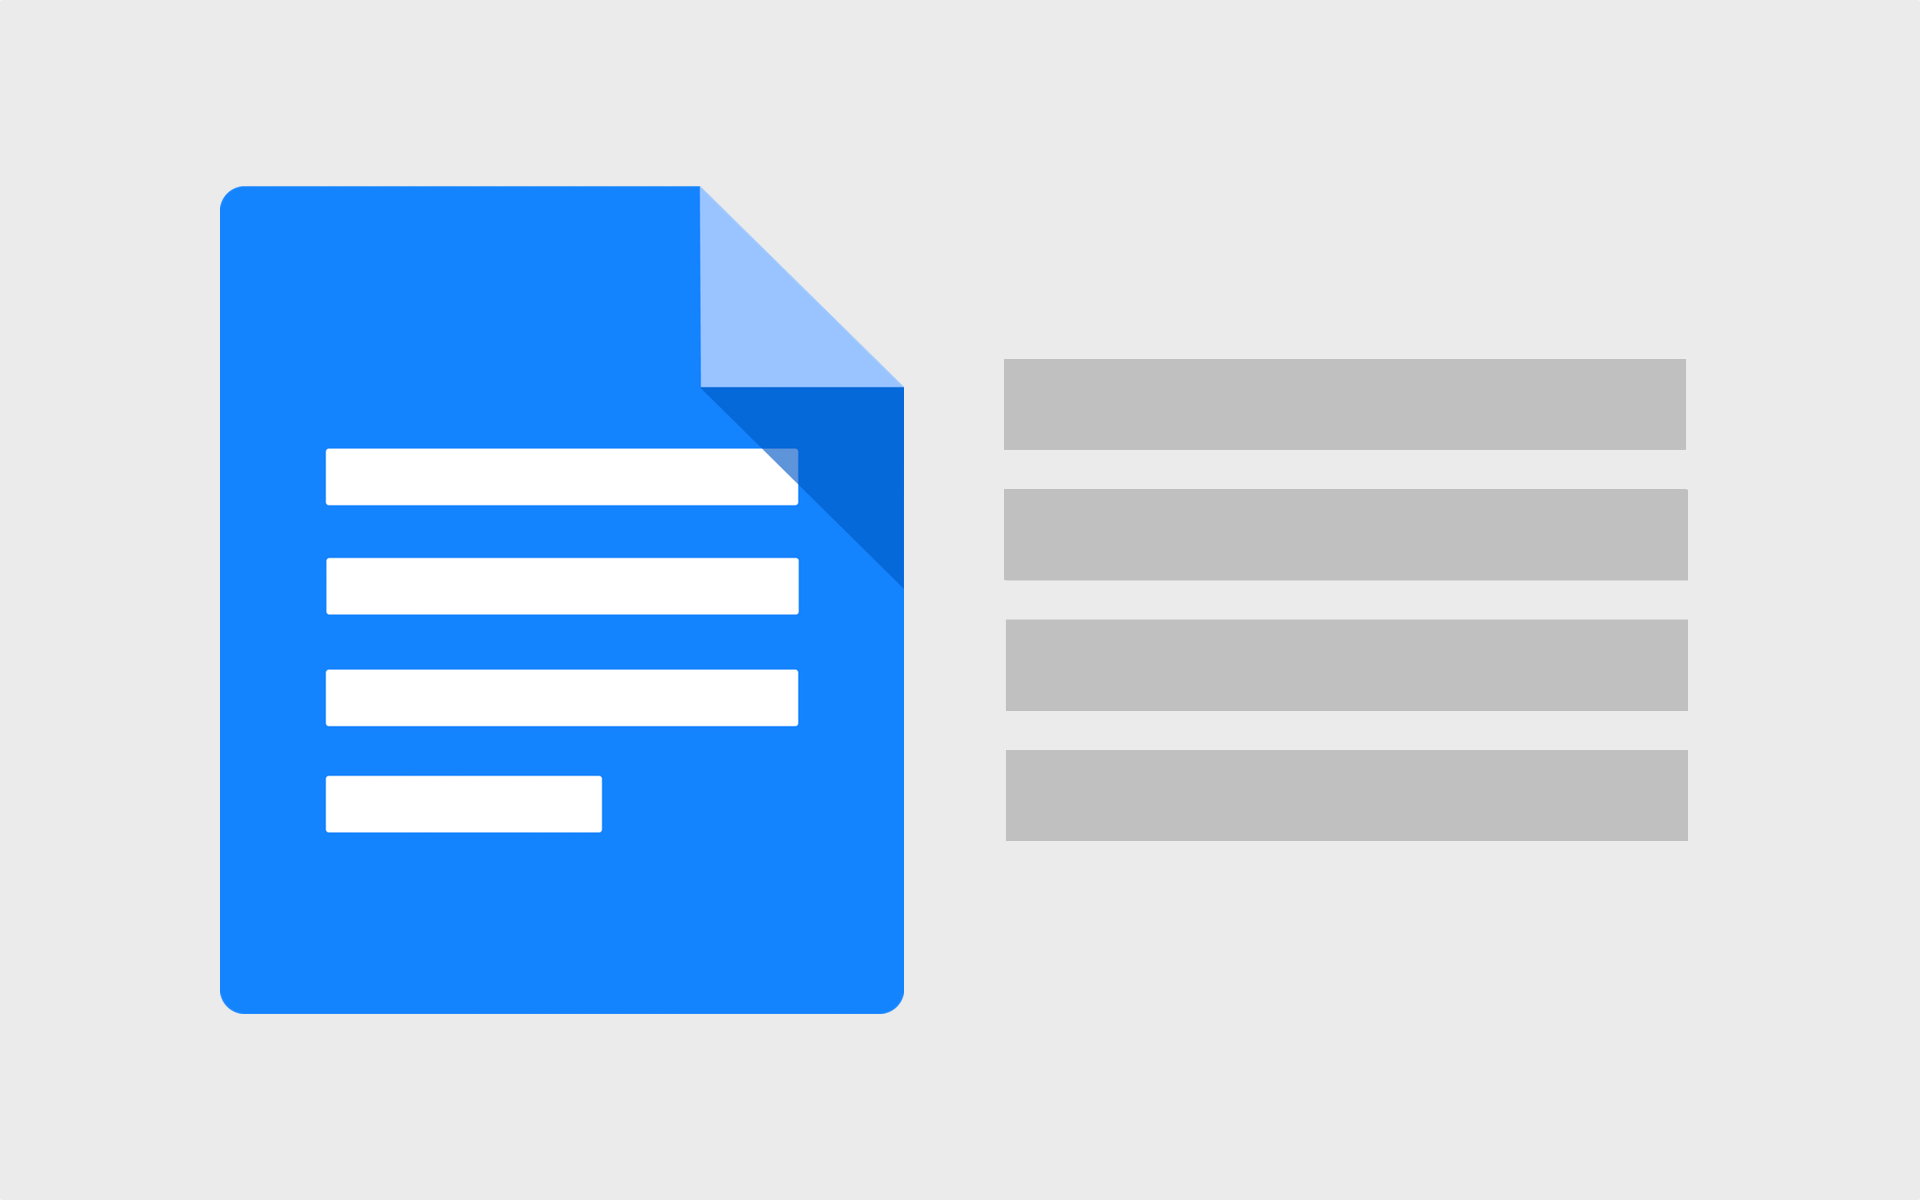 Cuprins in Google Docs v2